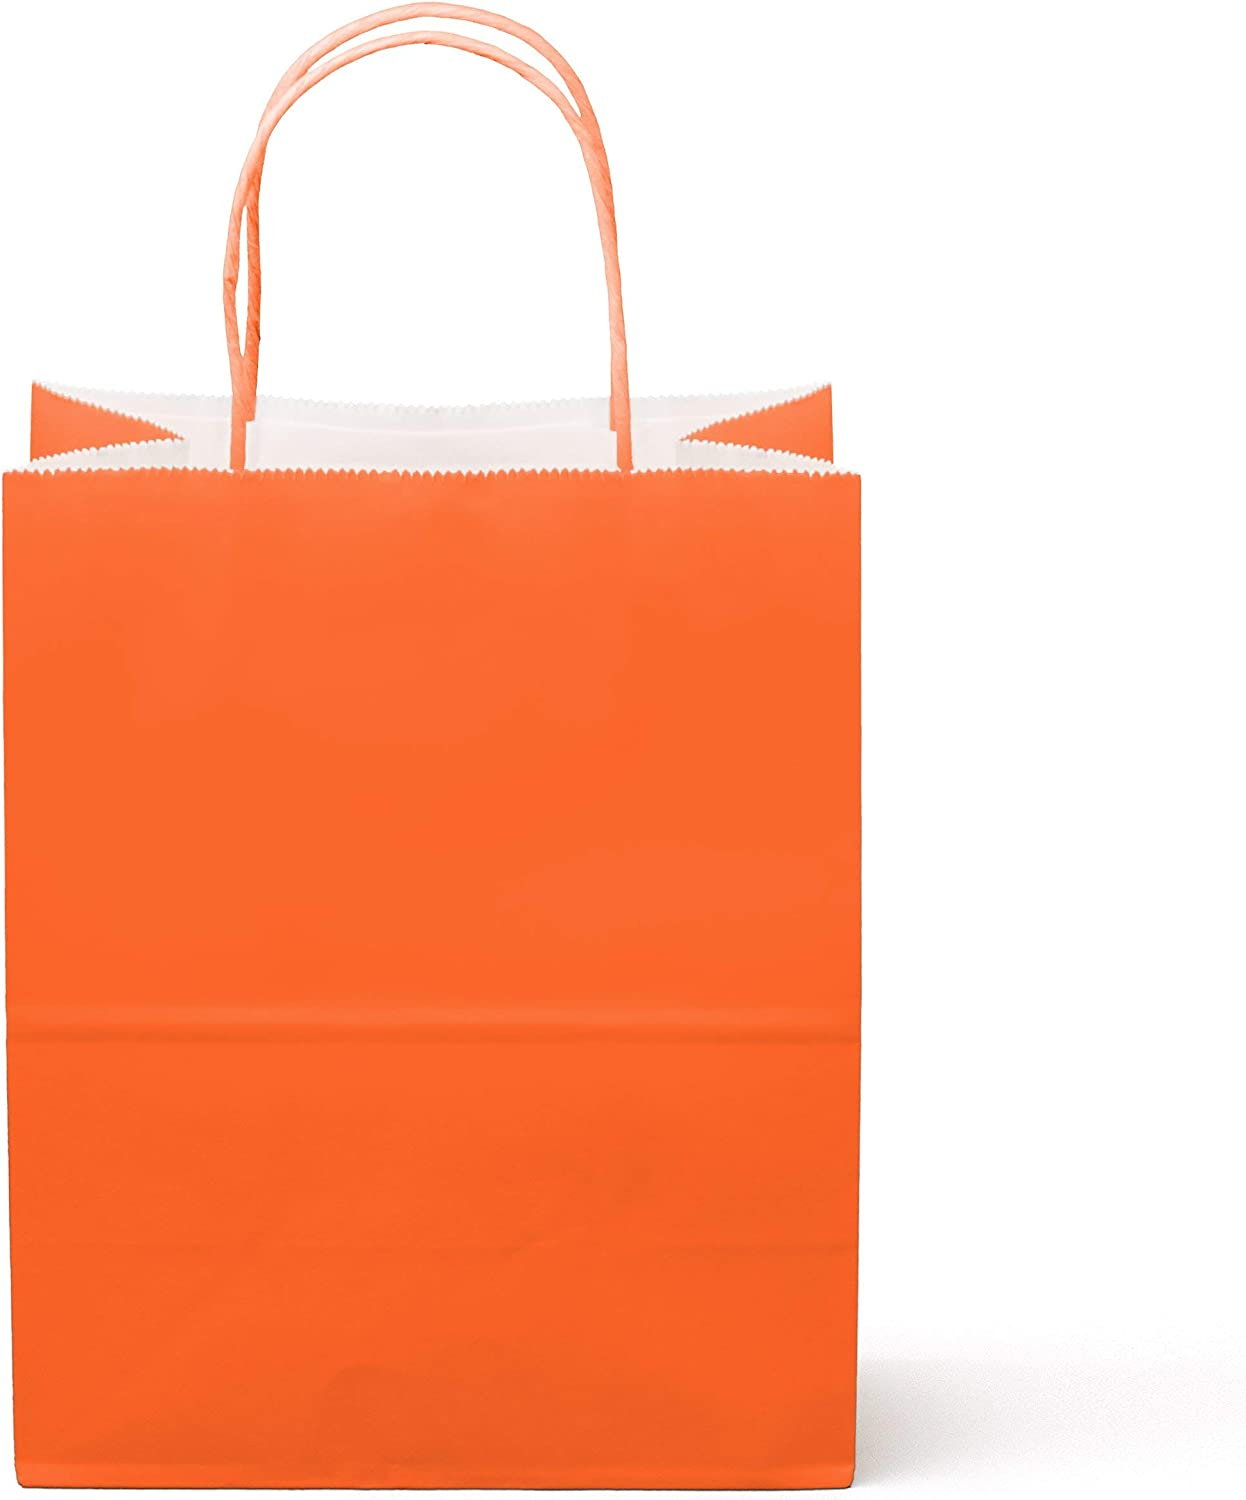 """12 Counts Food Safe Premium Paper and Ink Medium 10"""" X 8"""", Vivid Colored Kraft Bag with Colored Sturdy Handle, Perfect for Goodie Favor DIY Bag, Environmentally Safe (Medium, Orange)"""